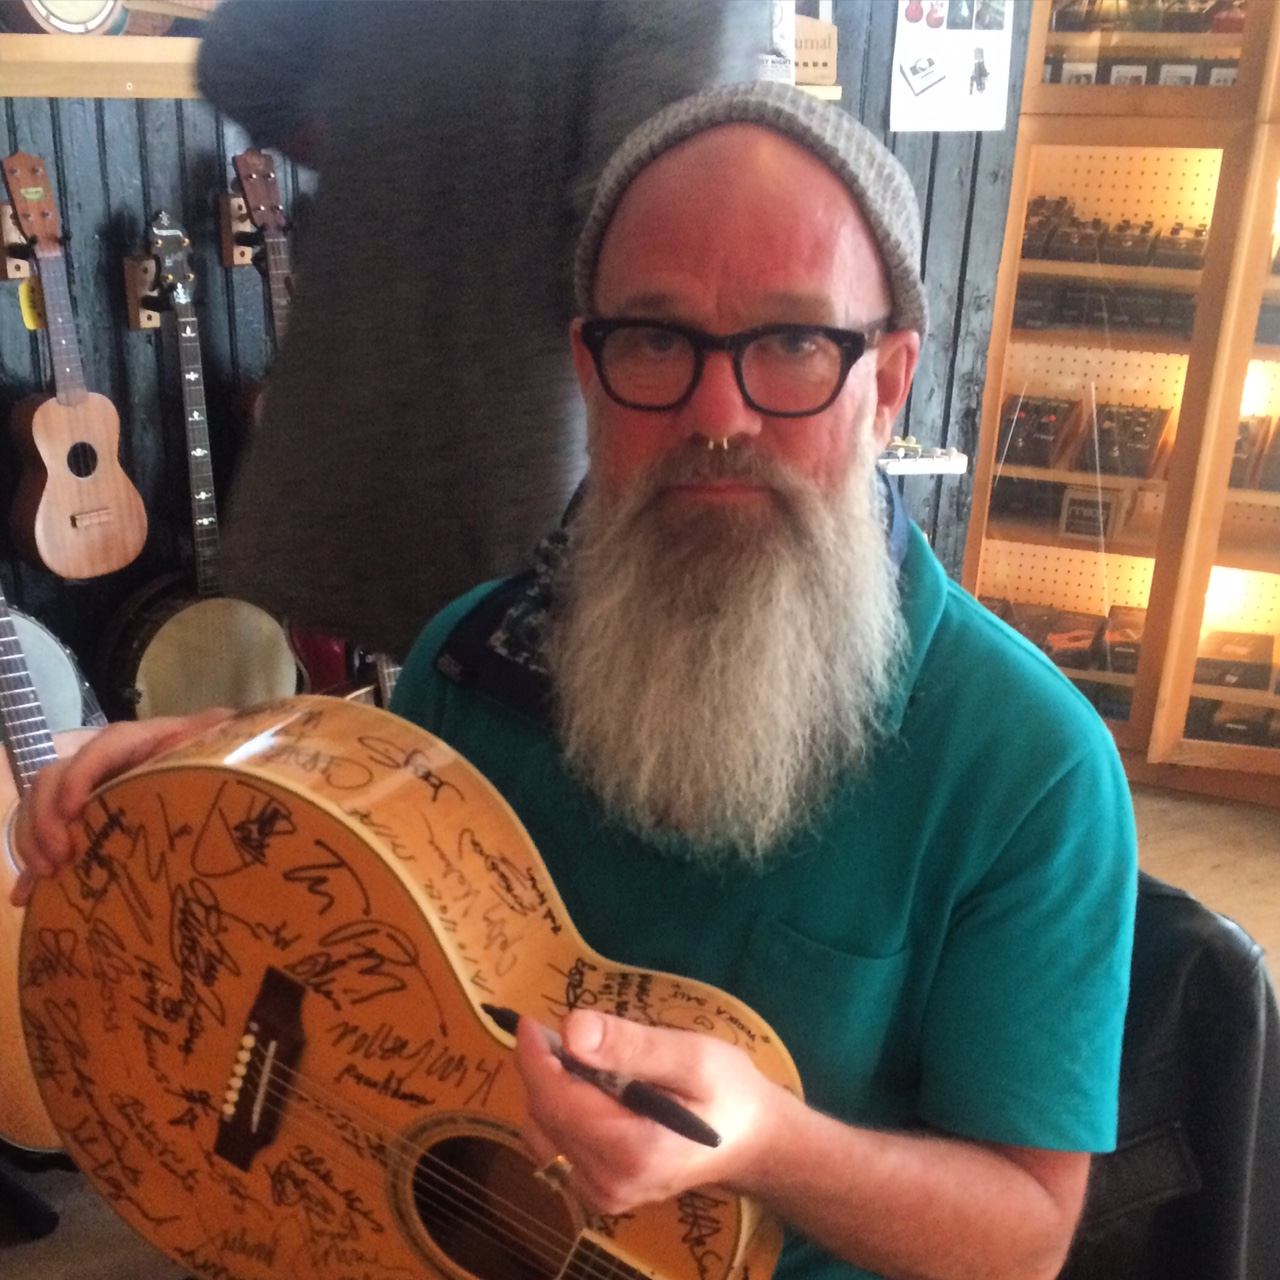 Michael Stipe Planned Parenthood guitar raffle